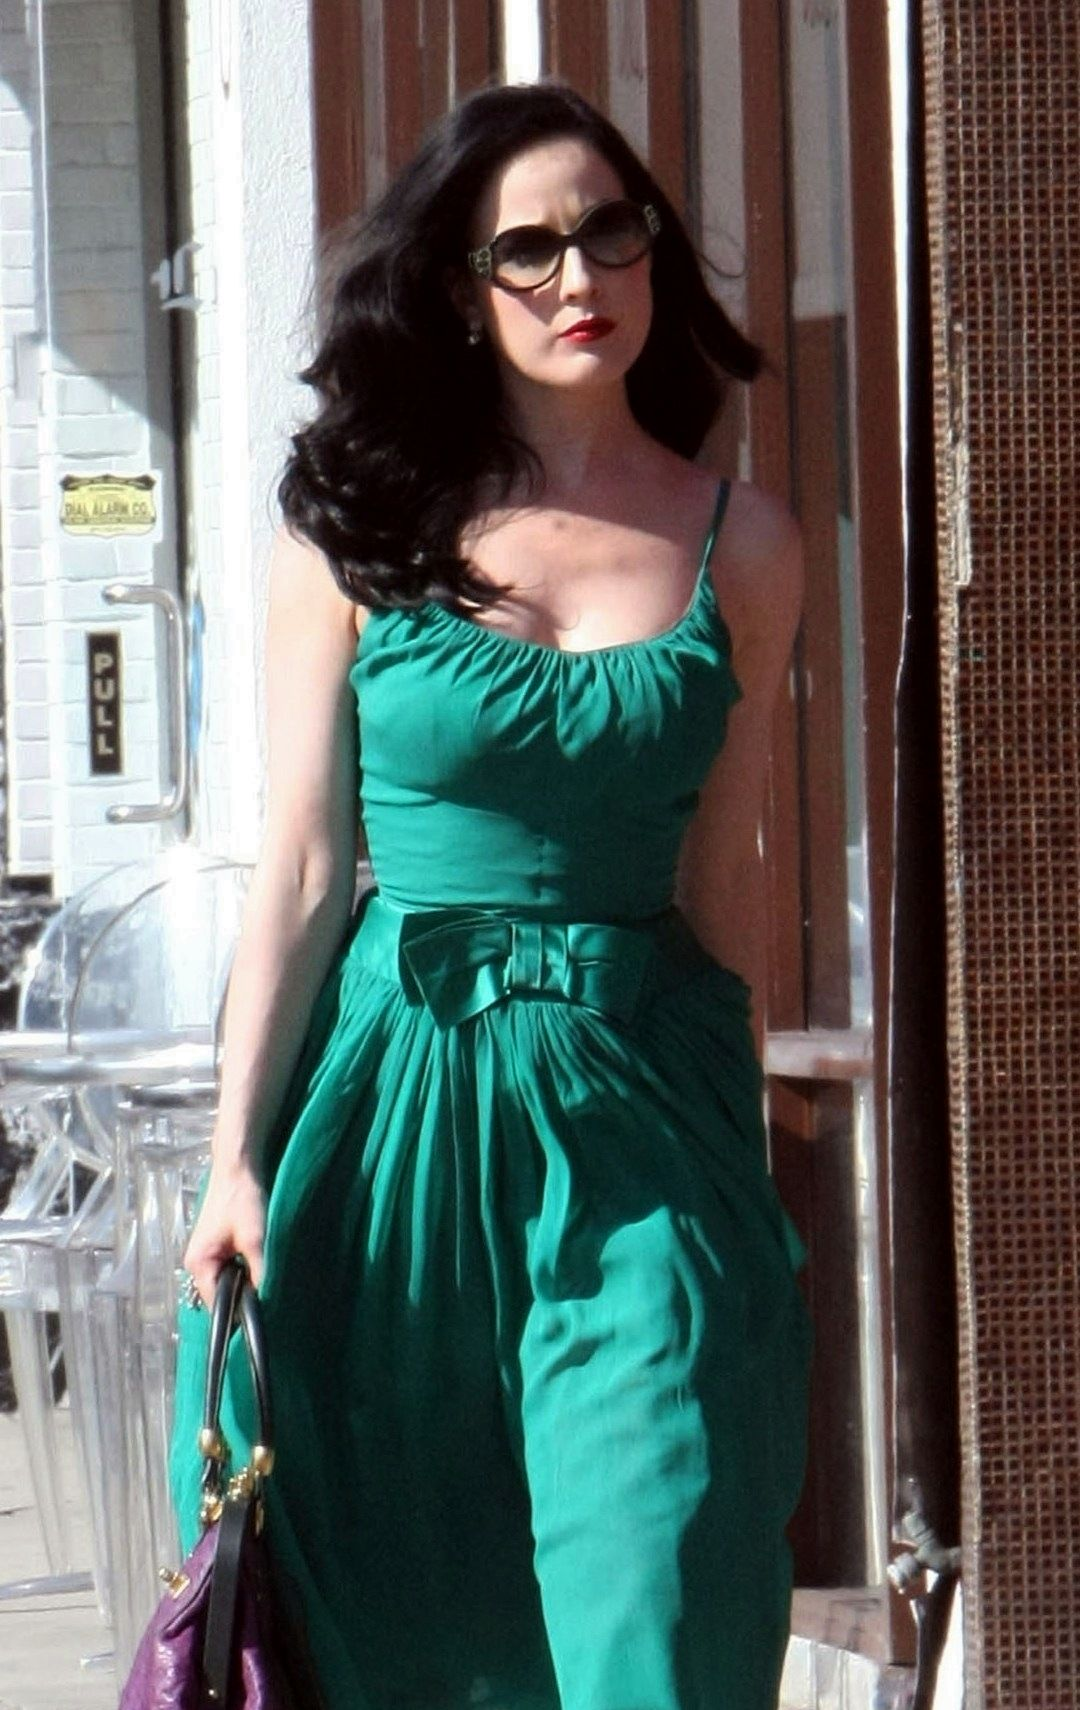 4bd5c3e240 Enchanted By Dita - HQ photos of burlesque star and style icon